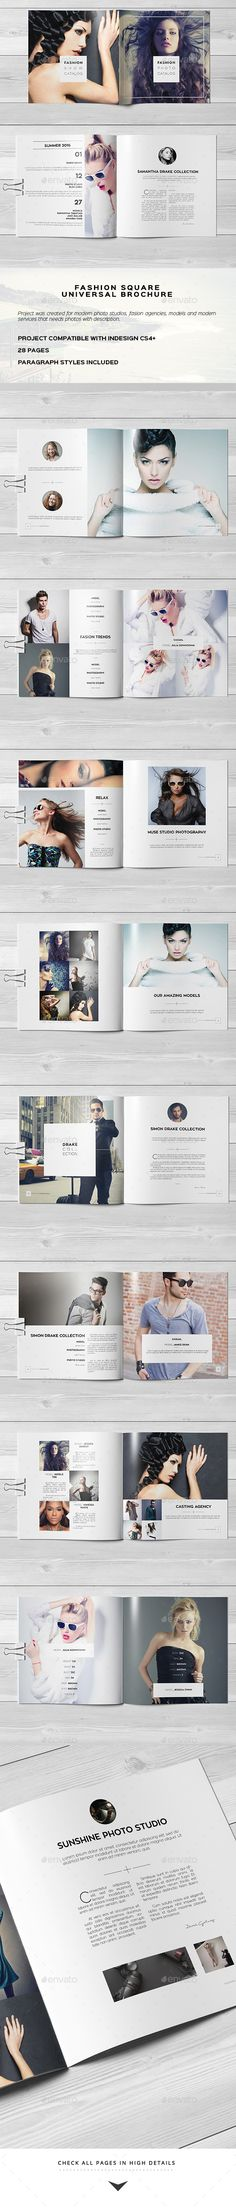 Fashion Square Universal Brochure / Catalog — InDesign INDD #letter #brand • Available here → https://graphicriver.net/item/fashion-square-universal-brochure-catalog/12389690?ref=pxcr